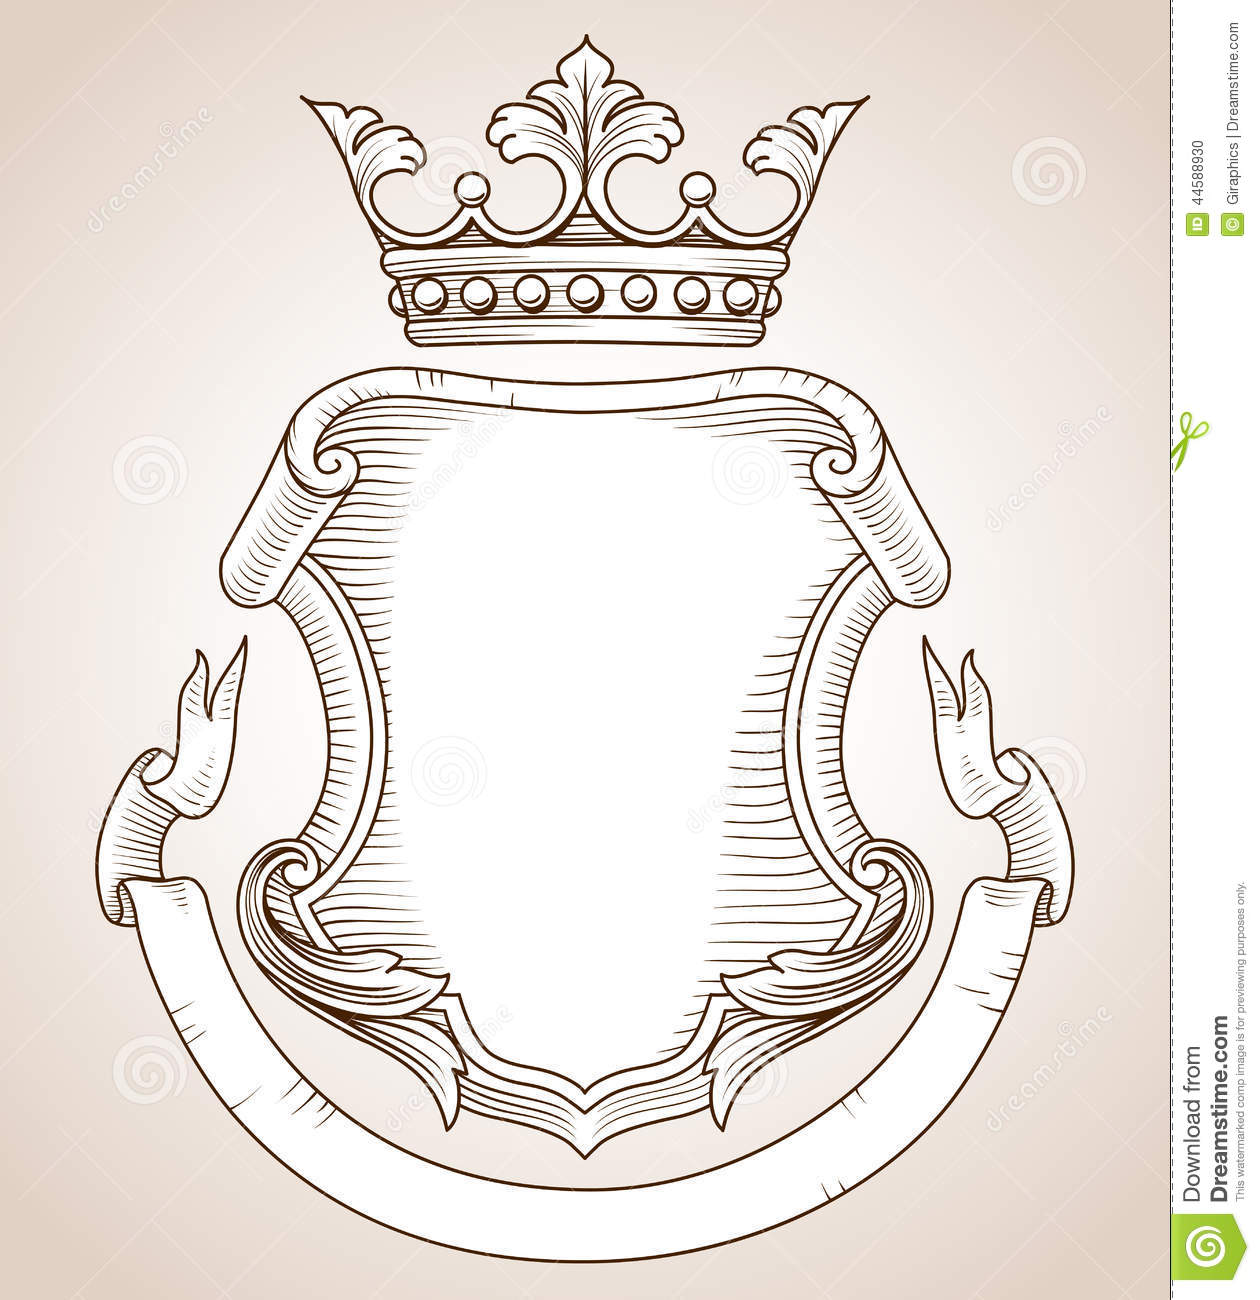 Coat Of Arms Stock Vector Illustration Of Floral Scroll